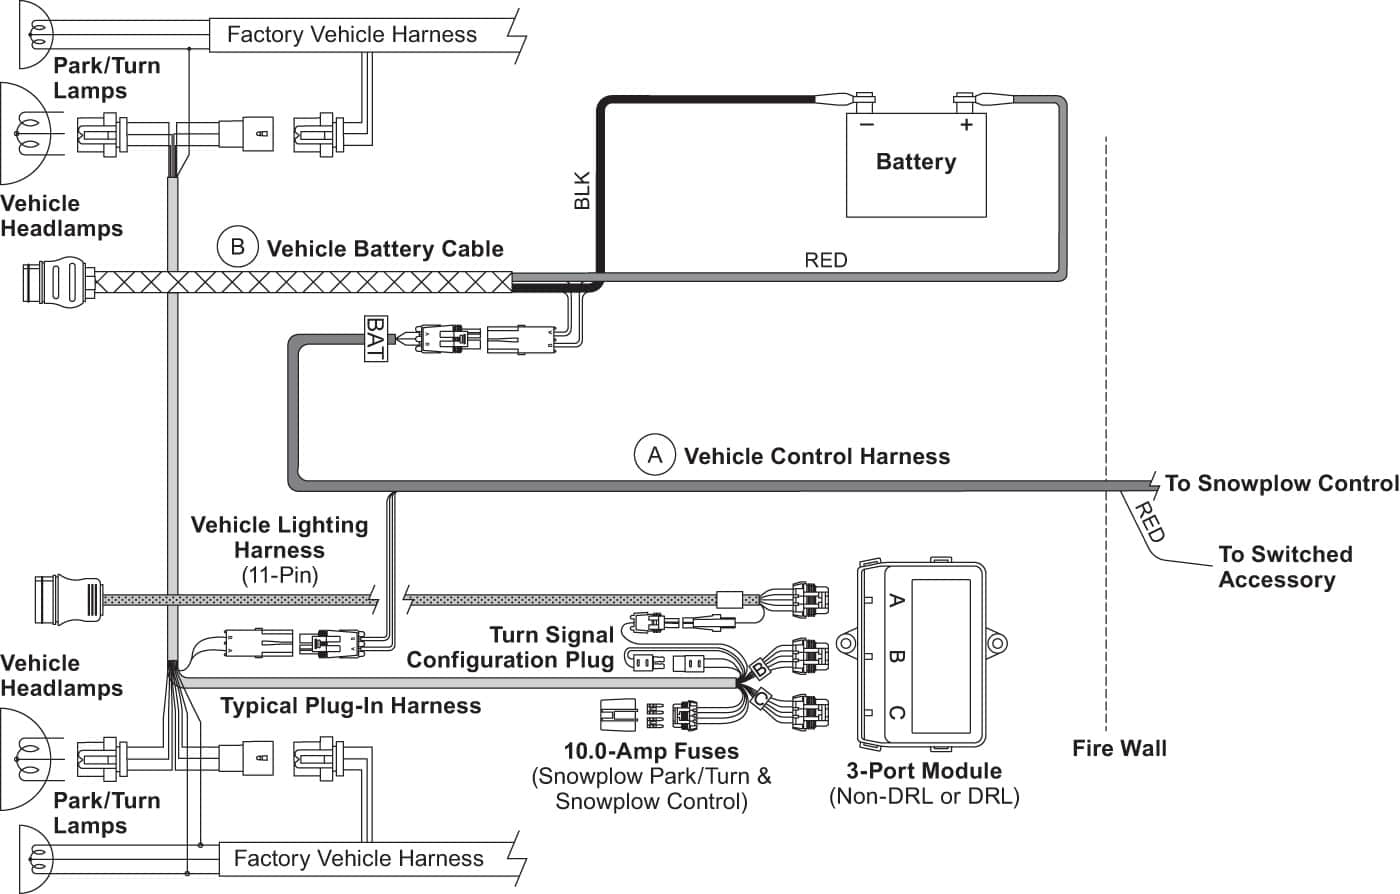 Western Plow Schematics - Data Wiring Diagram Schematic - Western Plow Solenoid Wiring Diagram